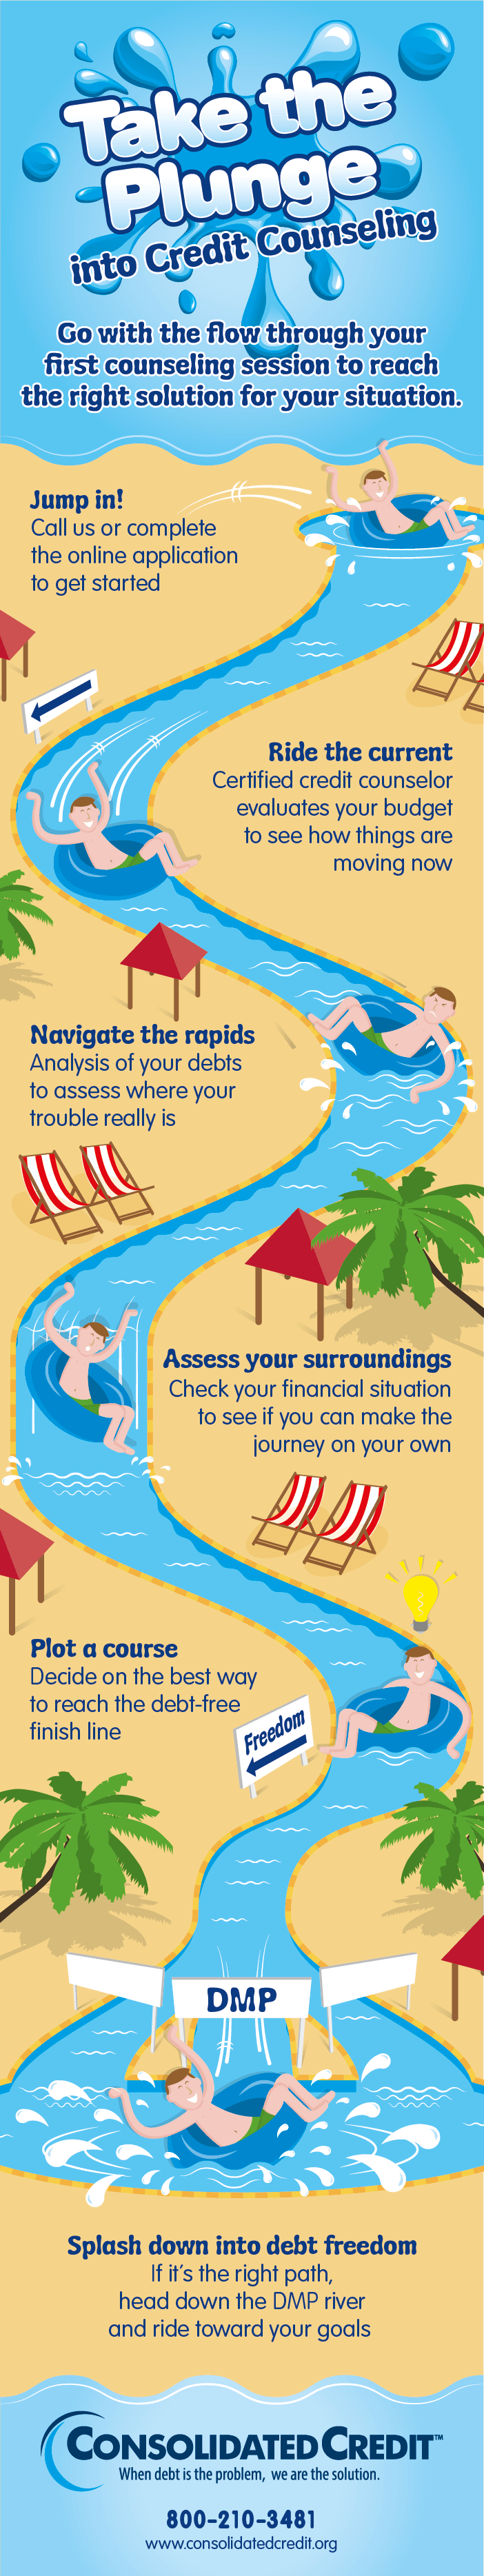 Graphic displaying how to take the plunge into credit counseling